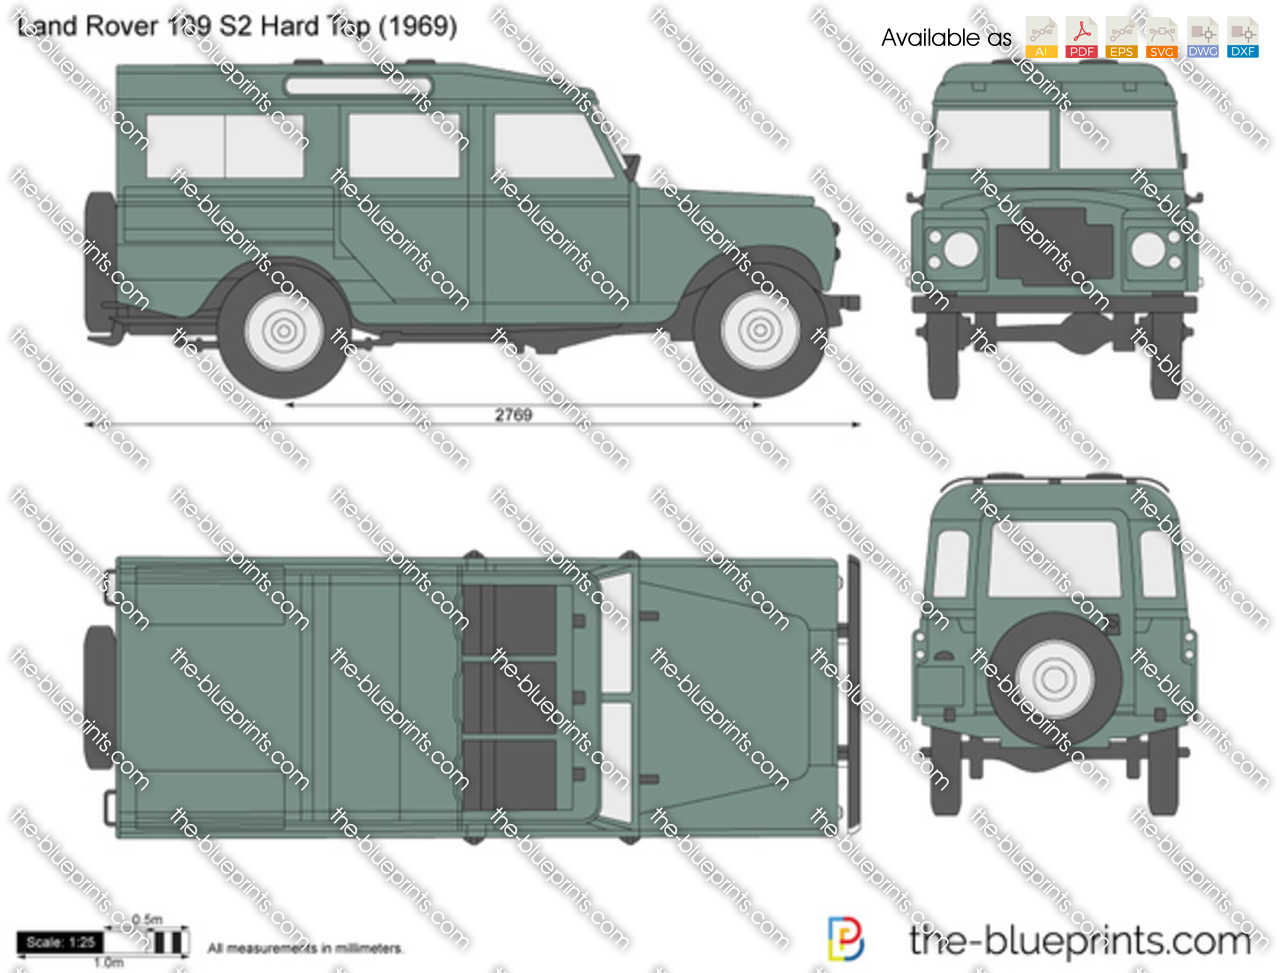 Land Rover 109 S2 Hard Top 1963